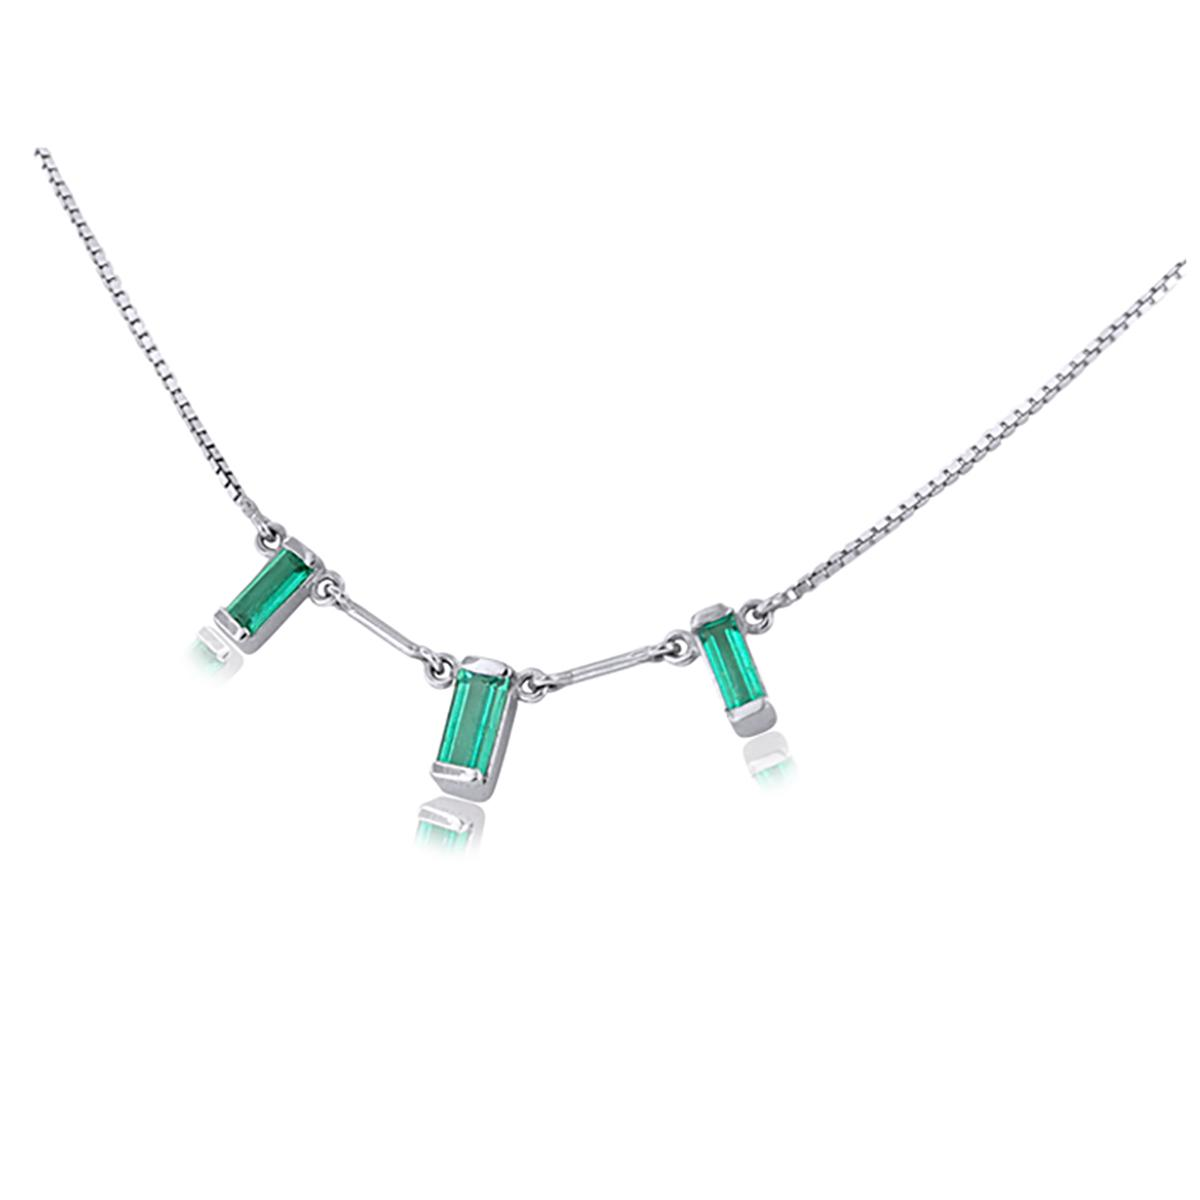 18k-white-gold-emerald-necklace-with-baguette-cut-natural-emeralds